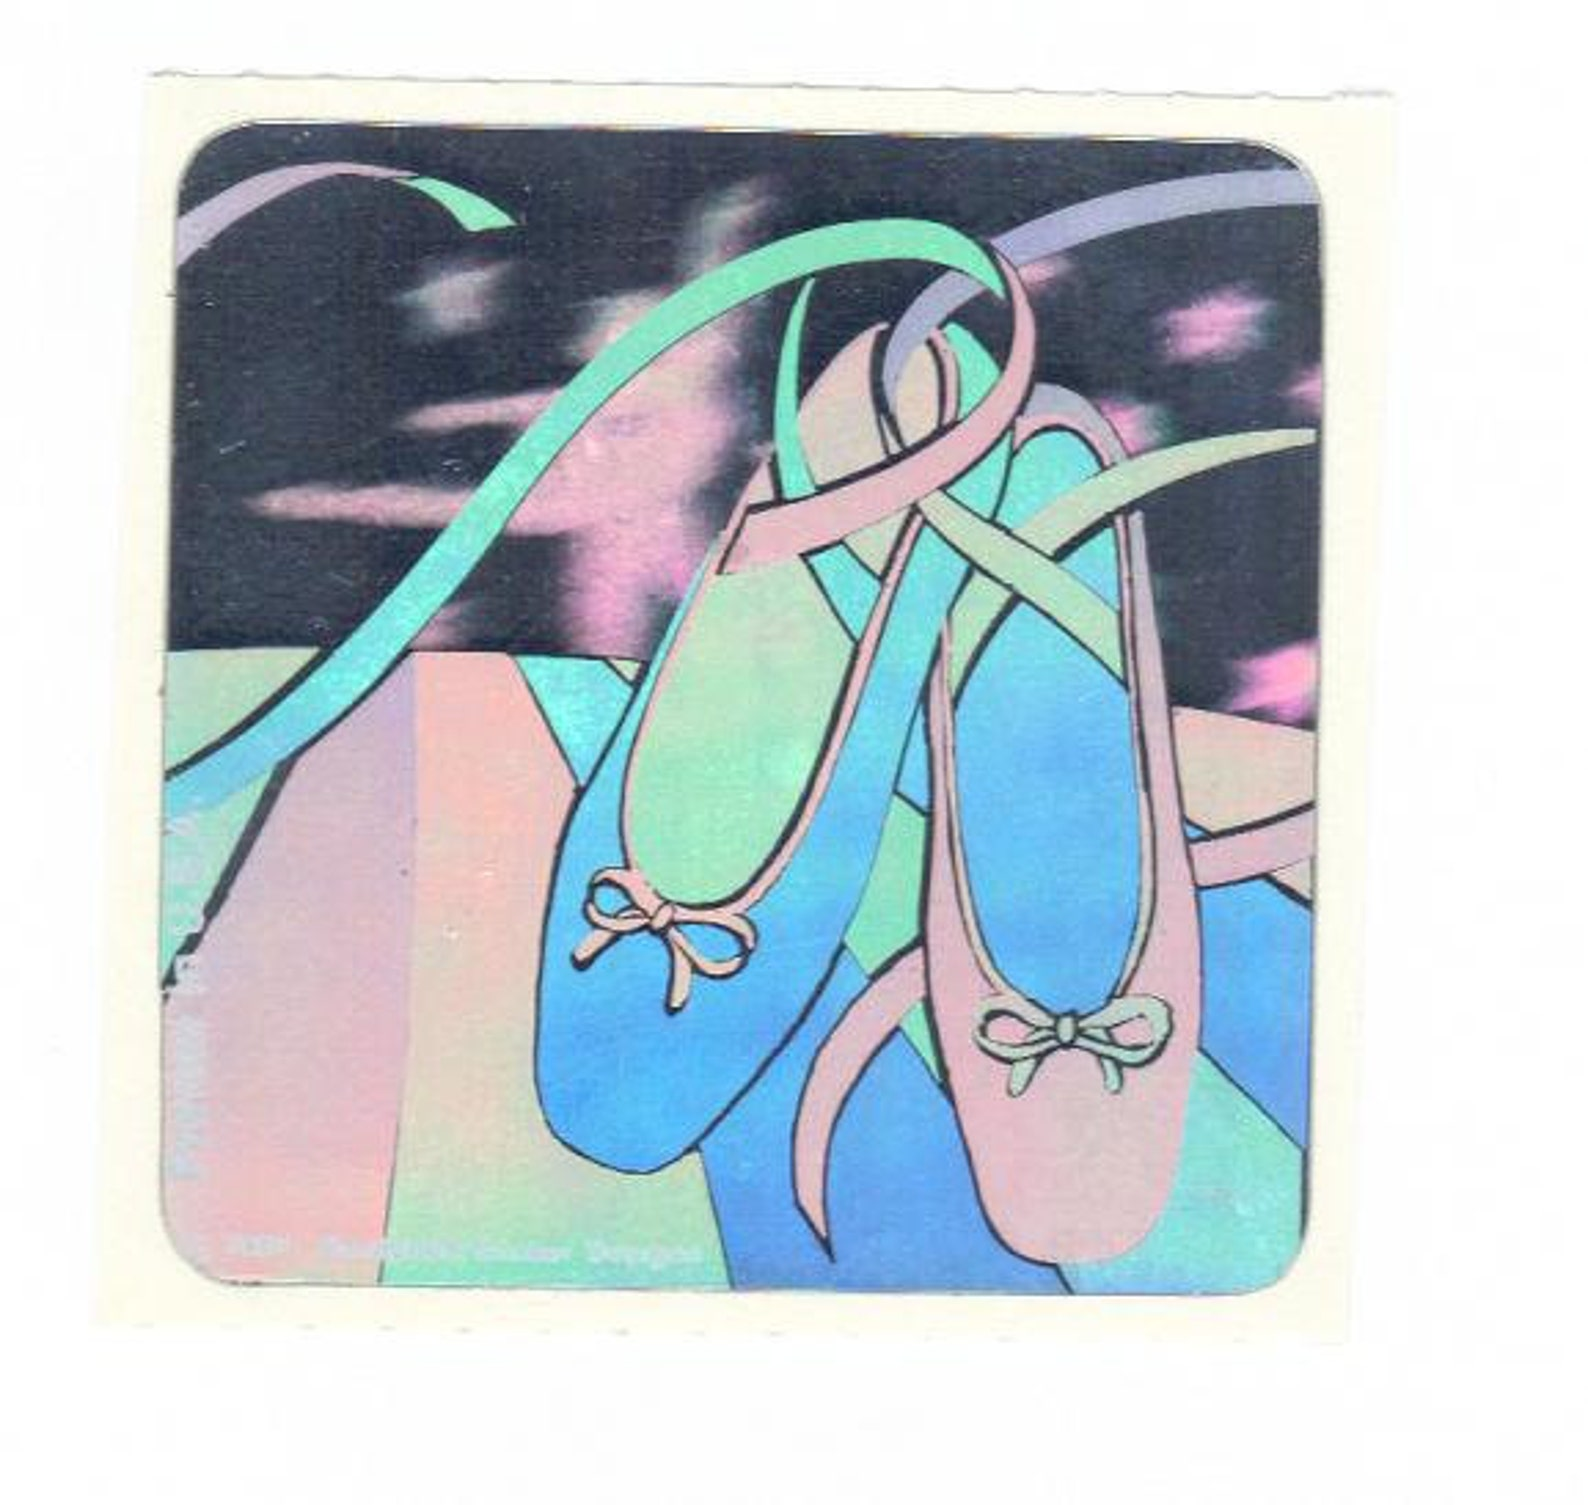 sandylion hologram ballet slippers sticker mod 1984 vintage shoes